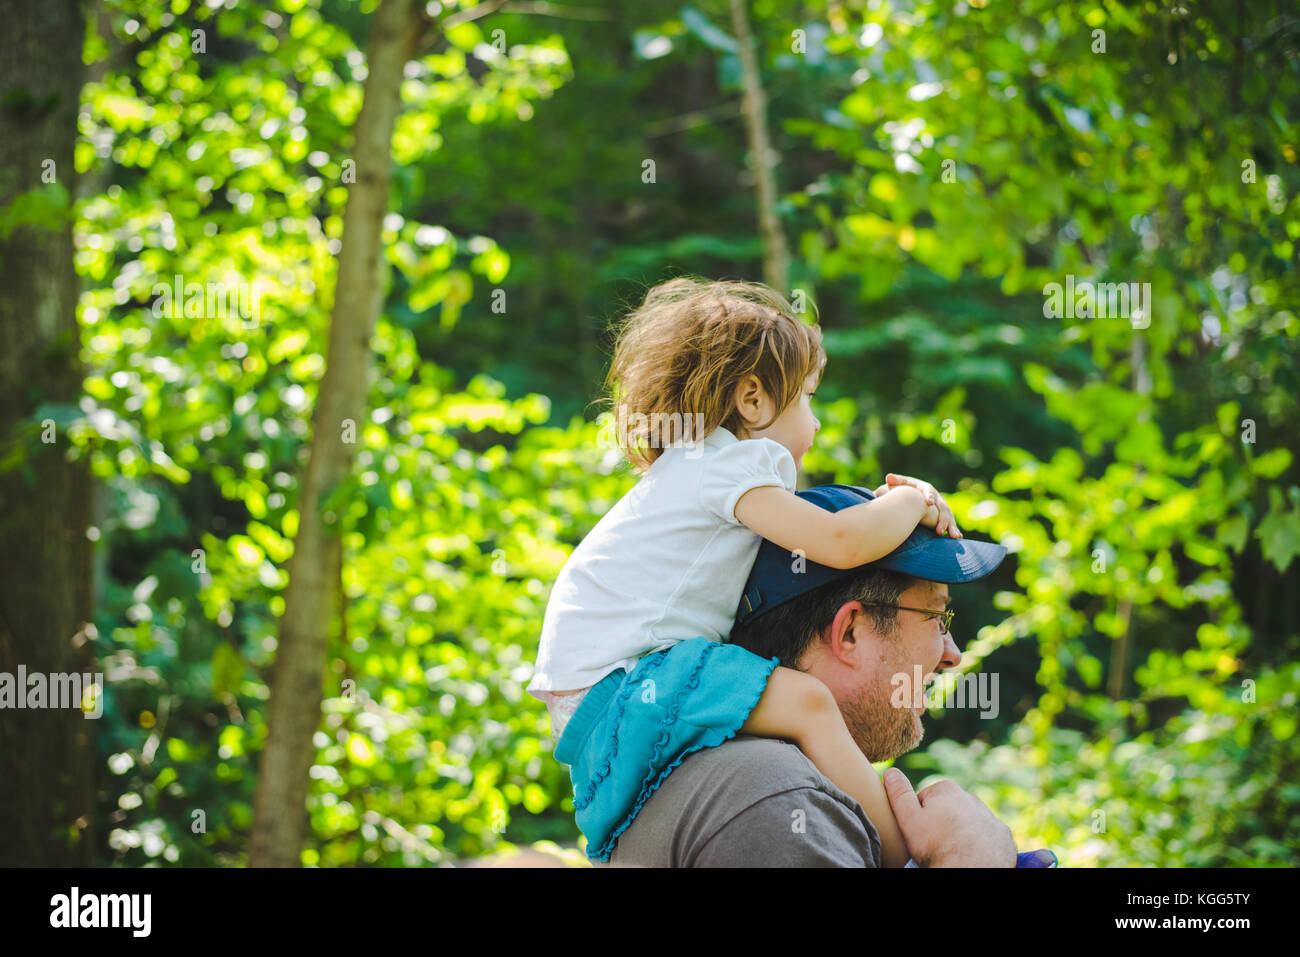 A father carries his daughter on his shoulders - Stock Image